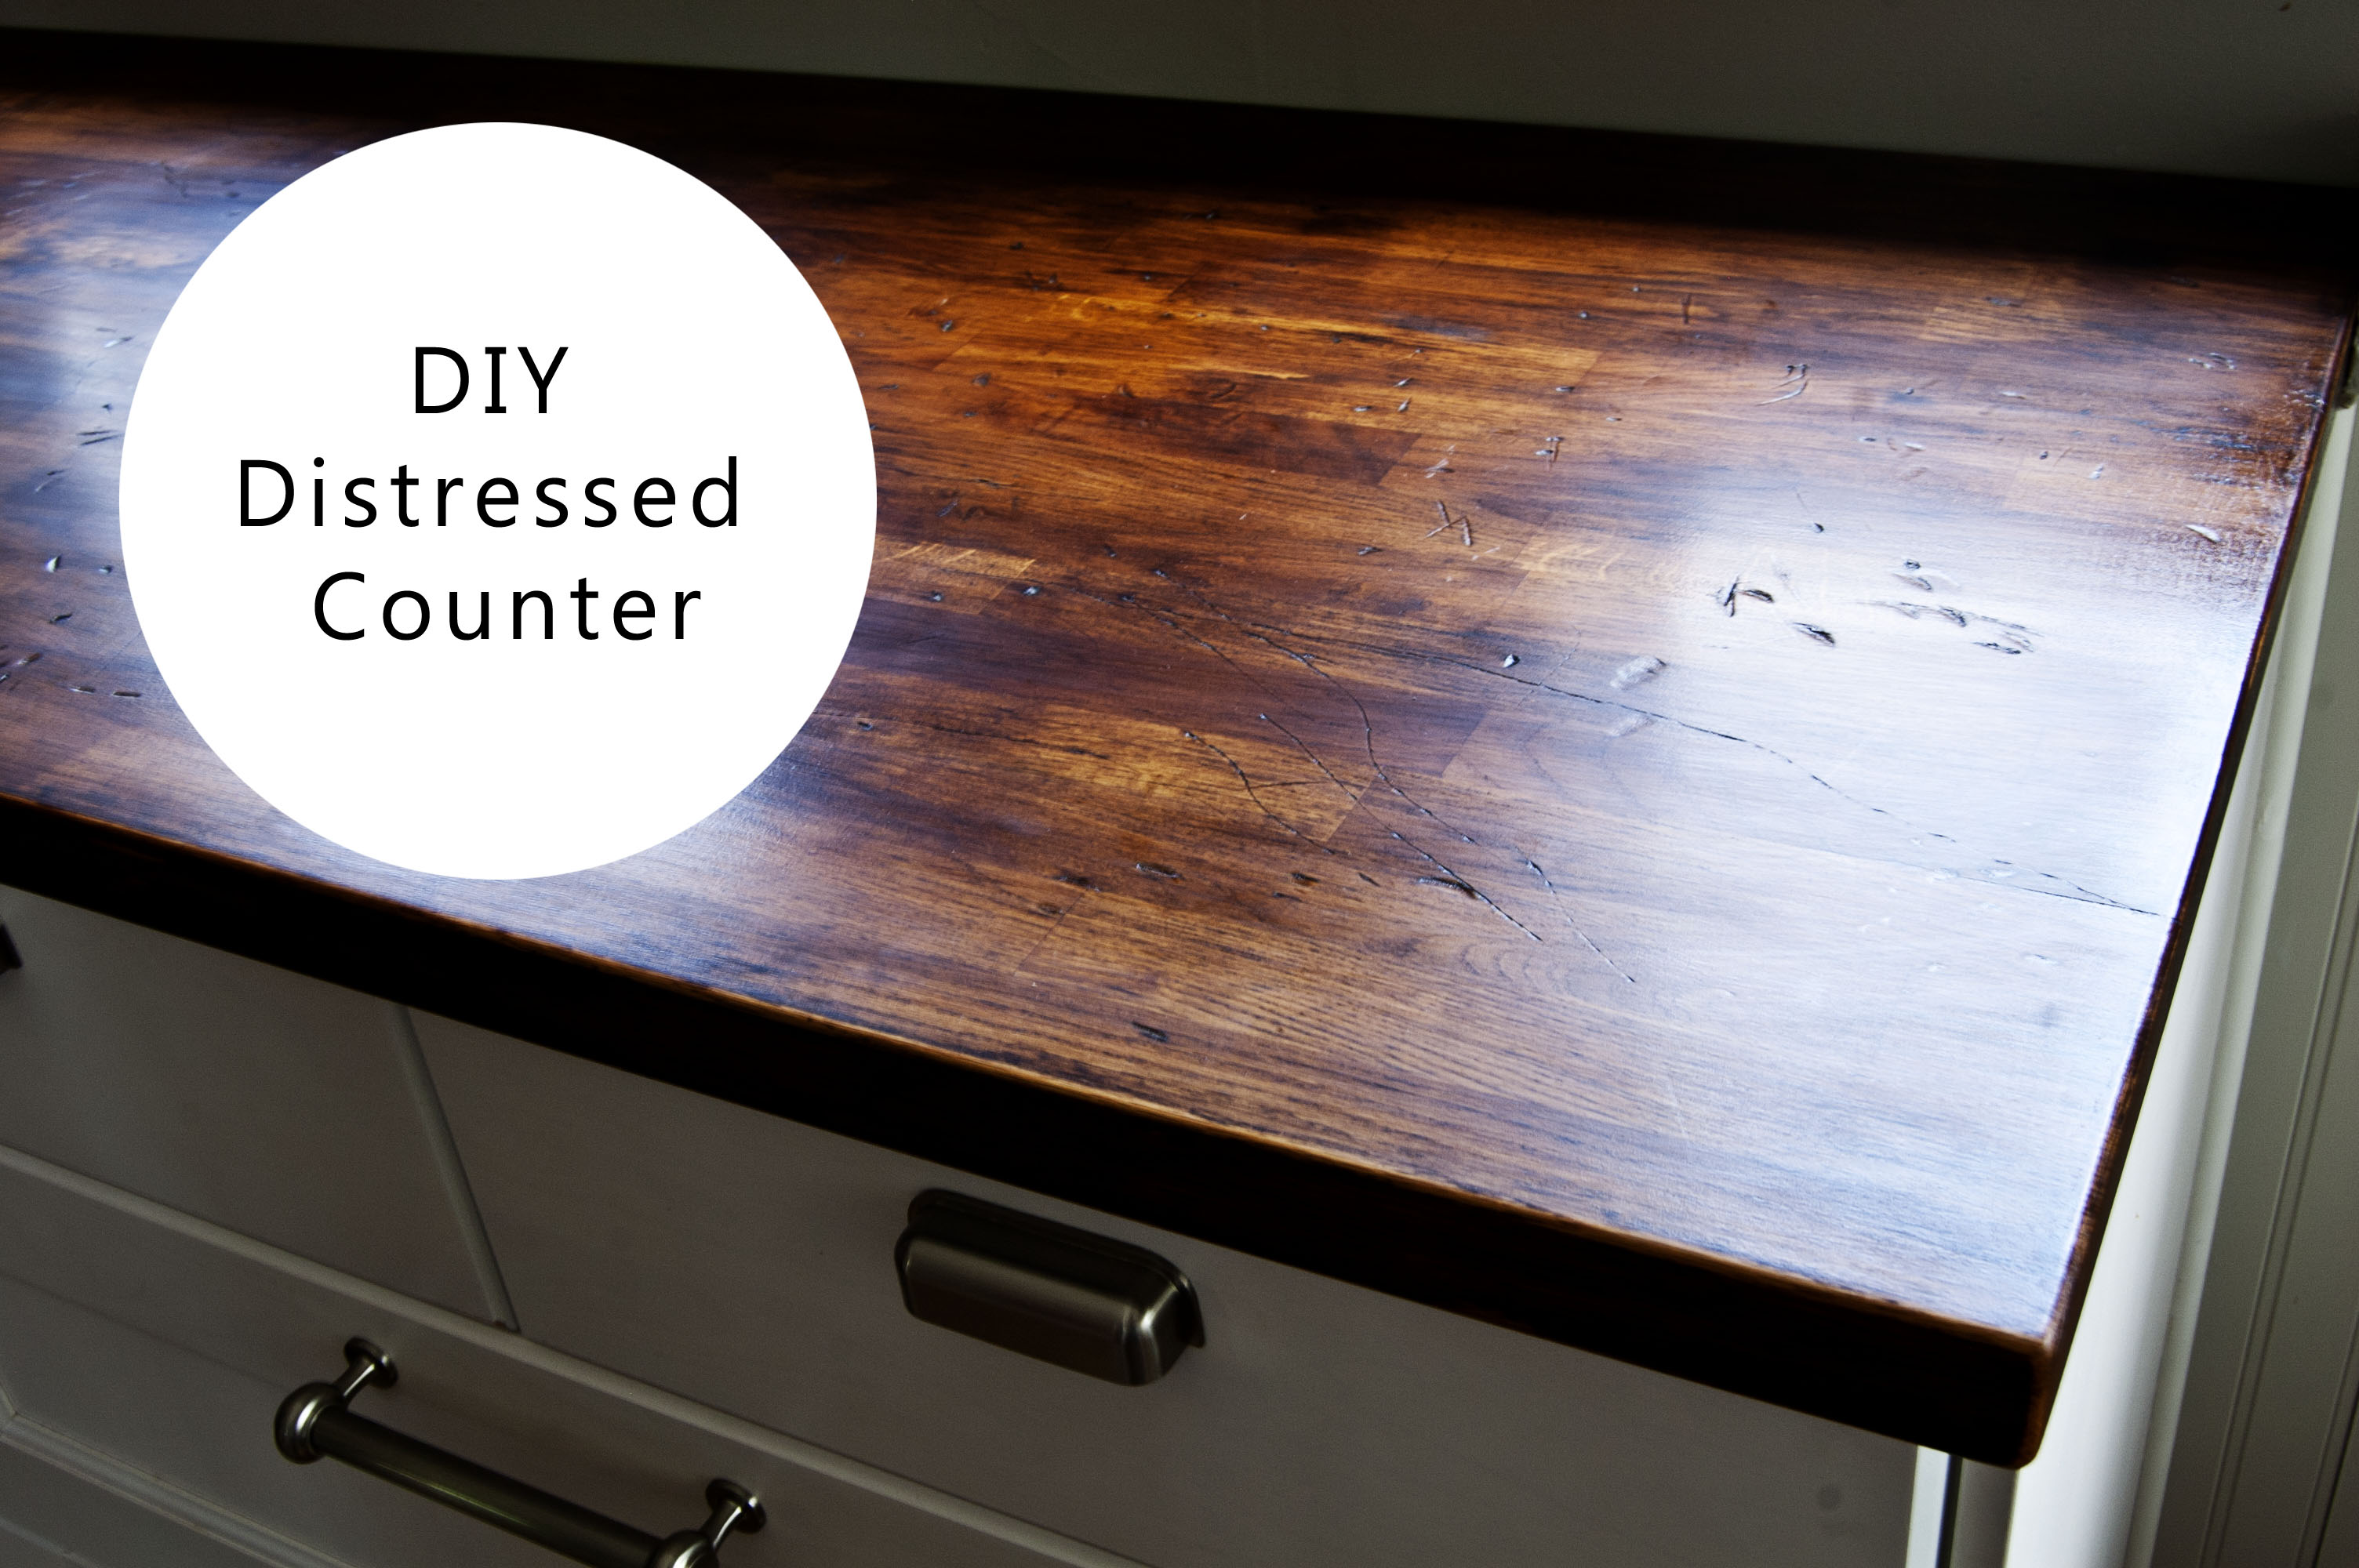 Diy Distressed Wood Counter By Jesse Butcher Block After Distressing Install Countertops